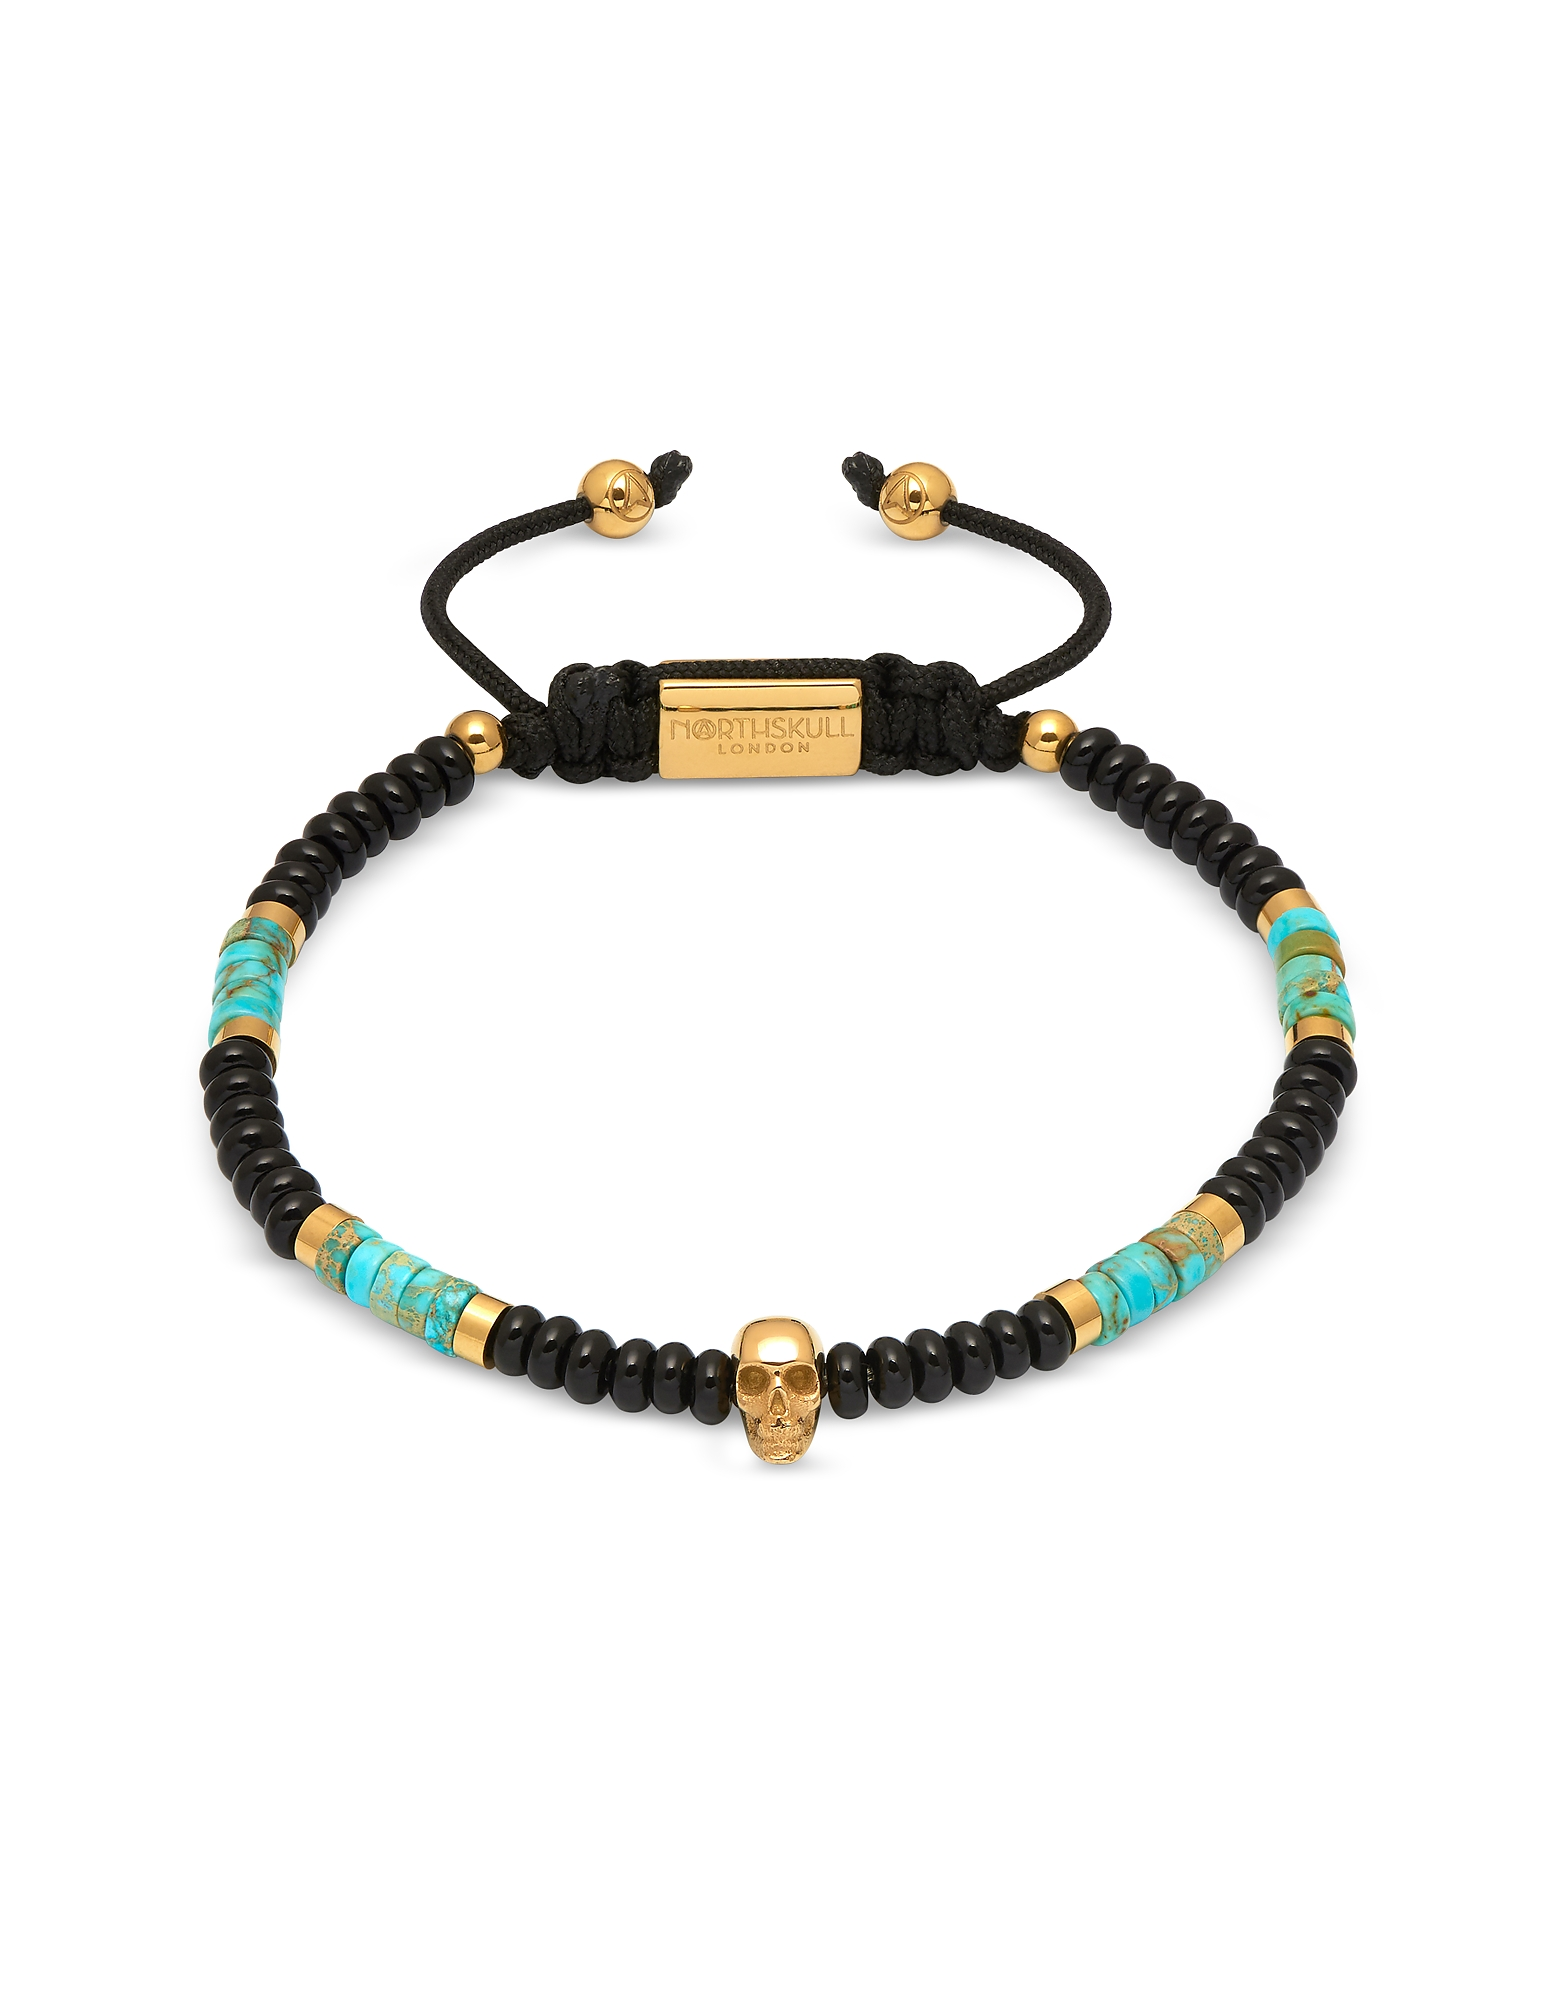 Atticus Skull Macramé Bracelet In Black Onyx w/ Turquoise And Yellow Gold